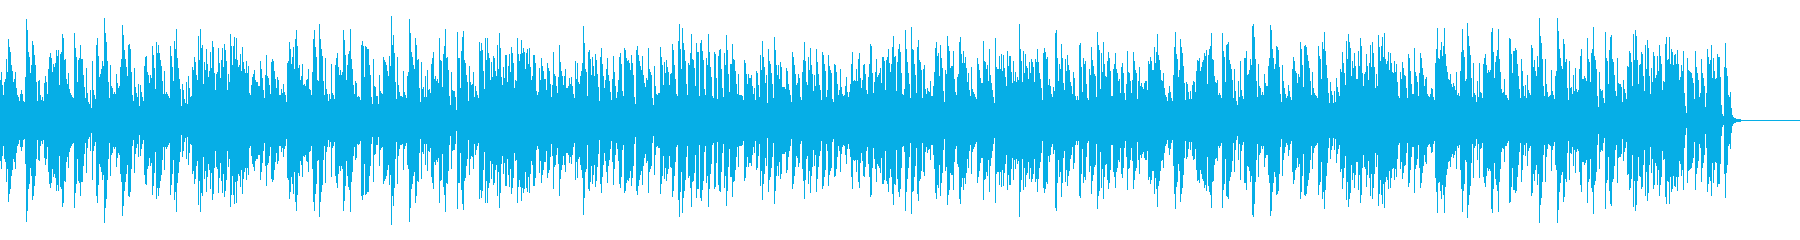 A stylish and mellow royal road jazz piano's reproduced waveform